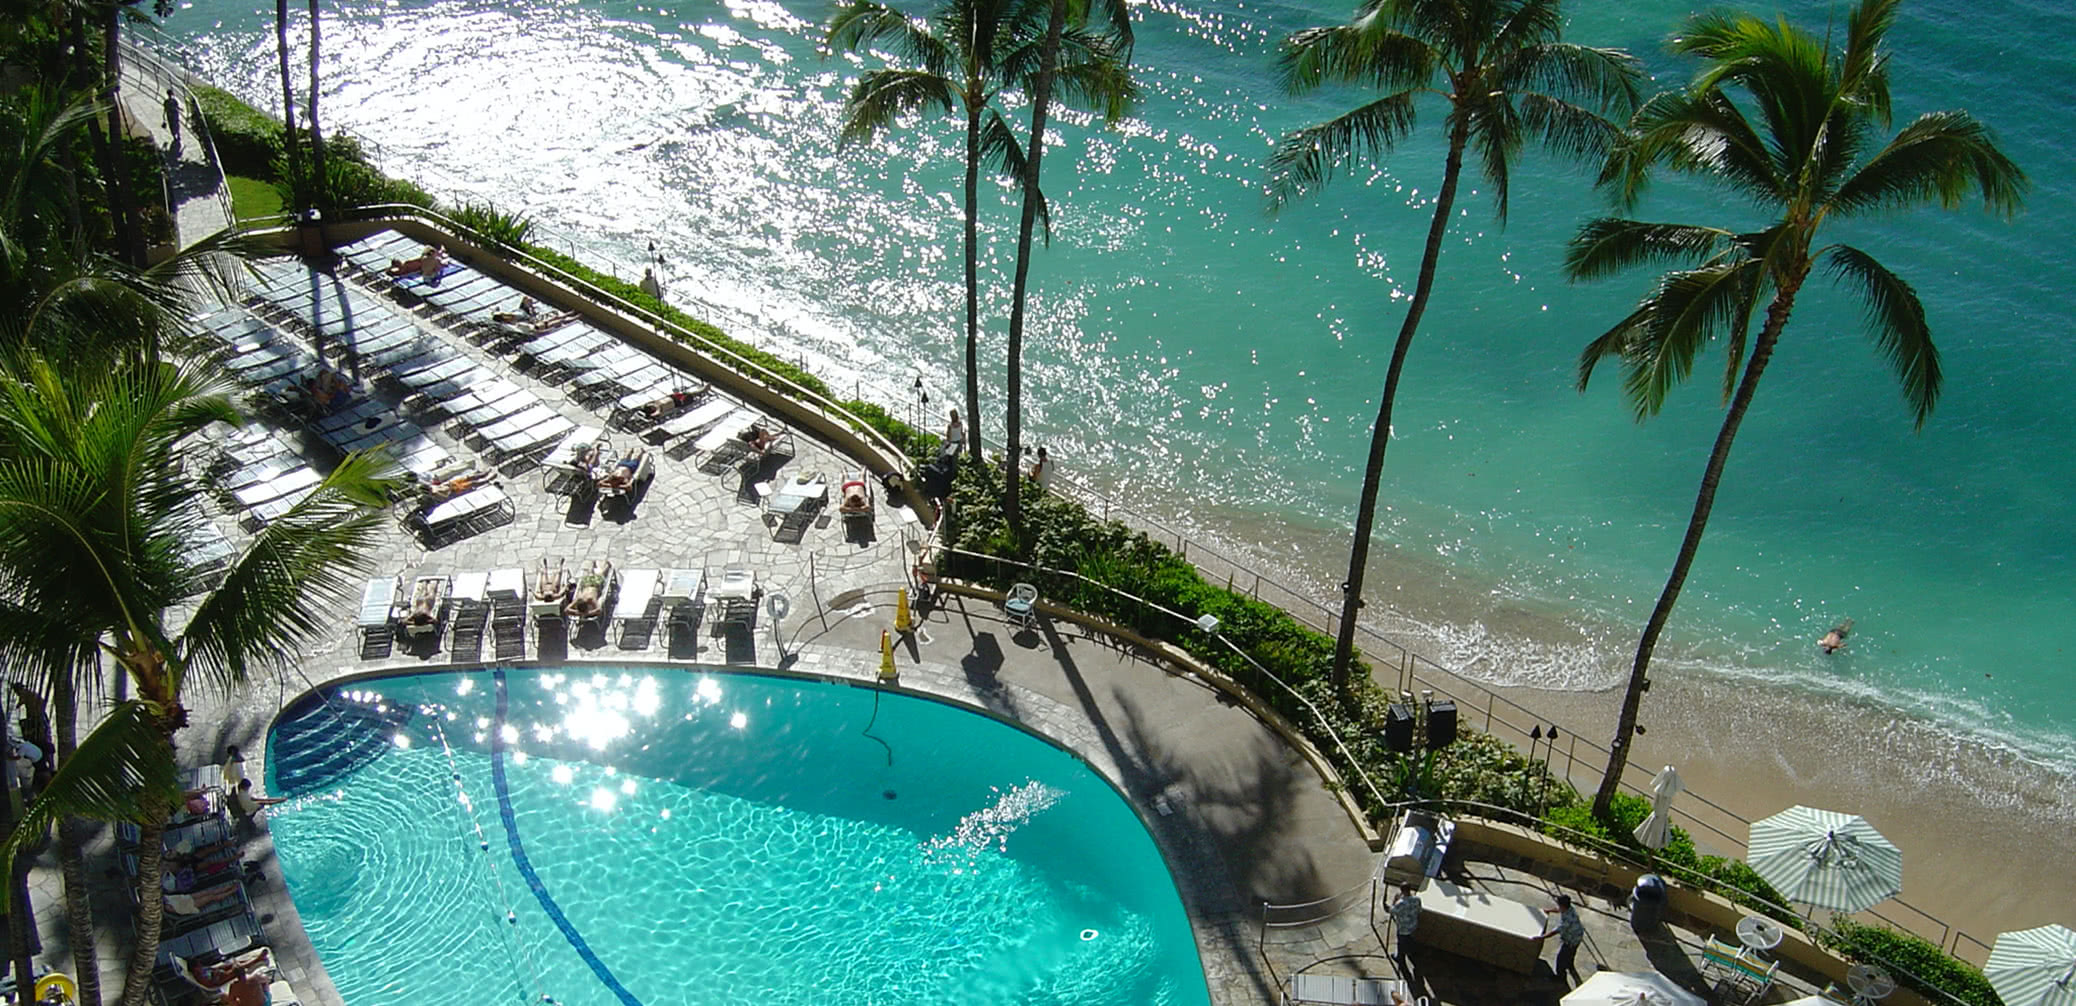 Cheapest Marriott Bonvoy Hotel In Hawaii